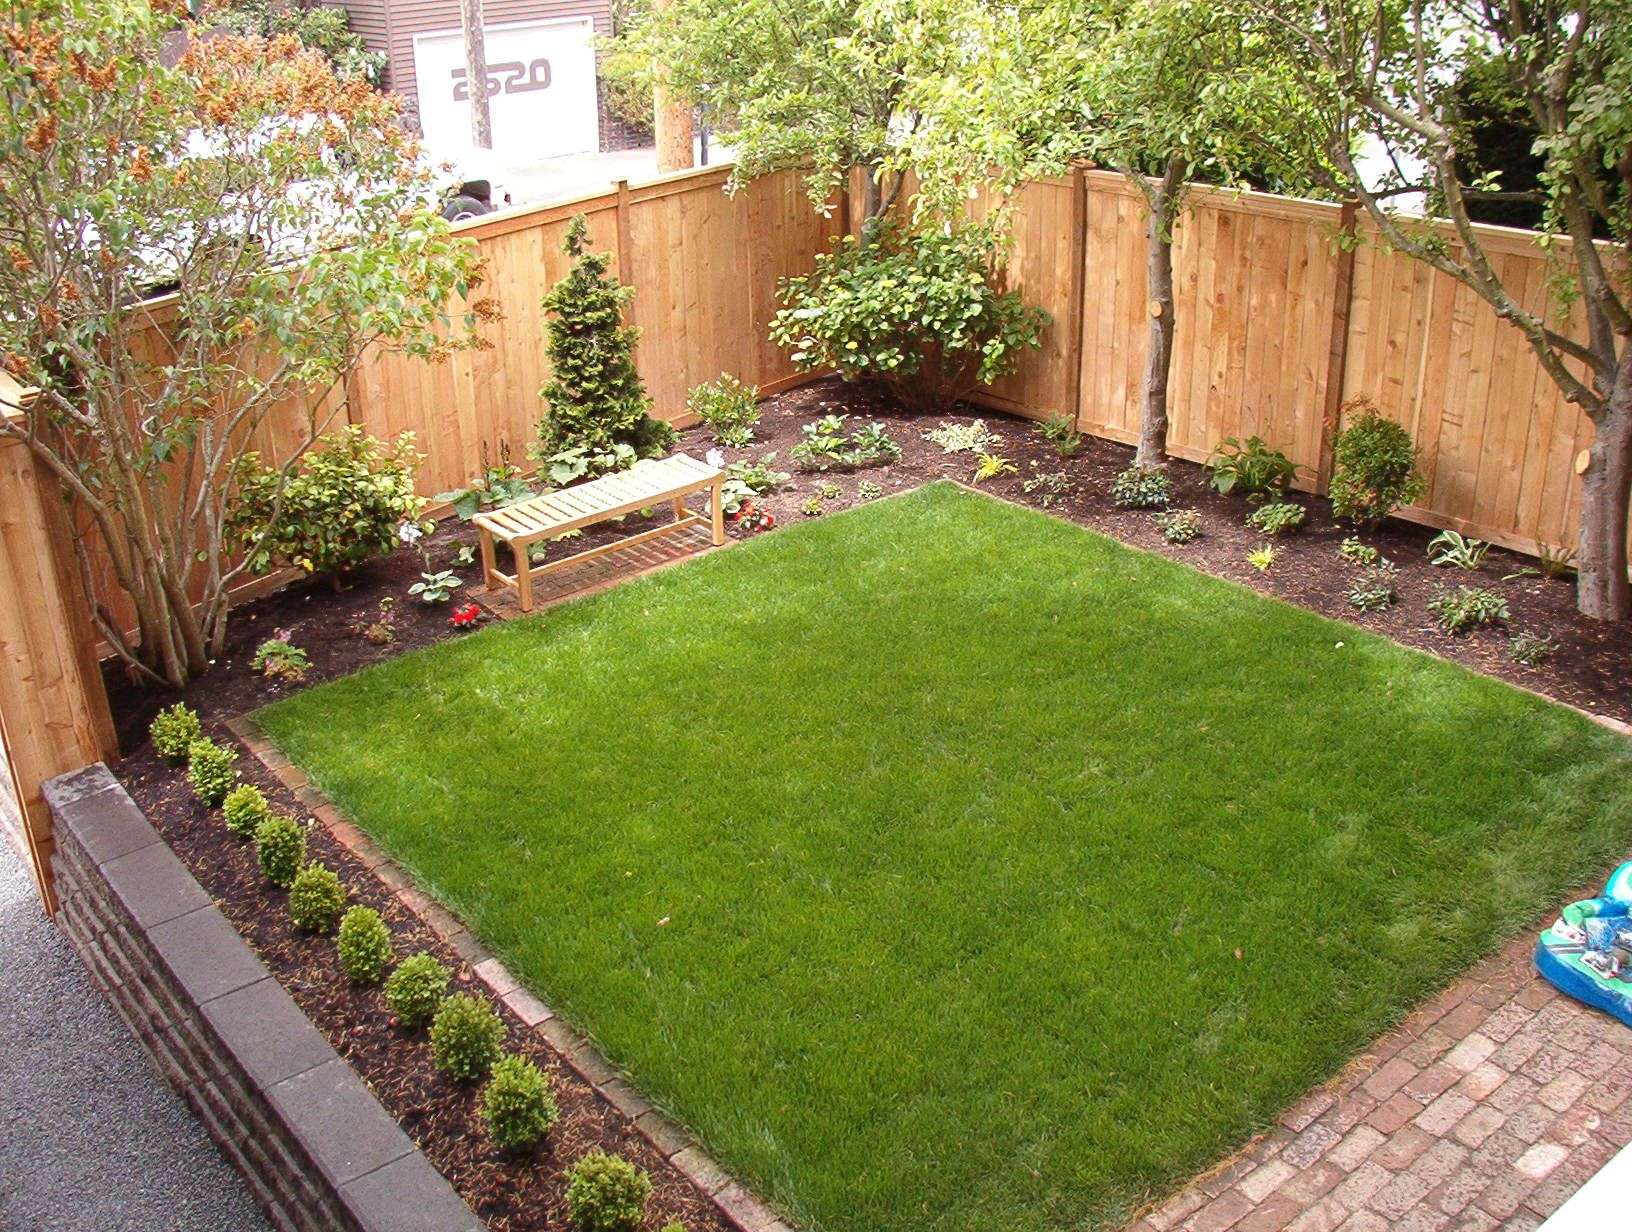 Sod lawn for children to play on landscape ideas for Yard design ideas